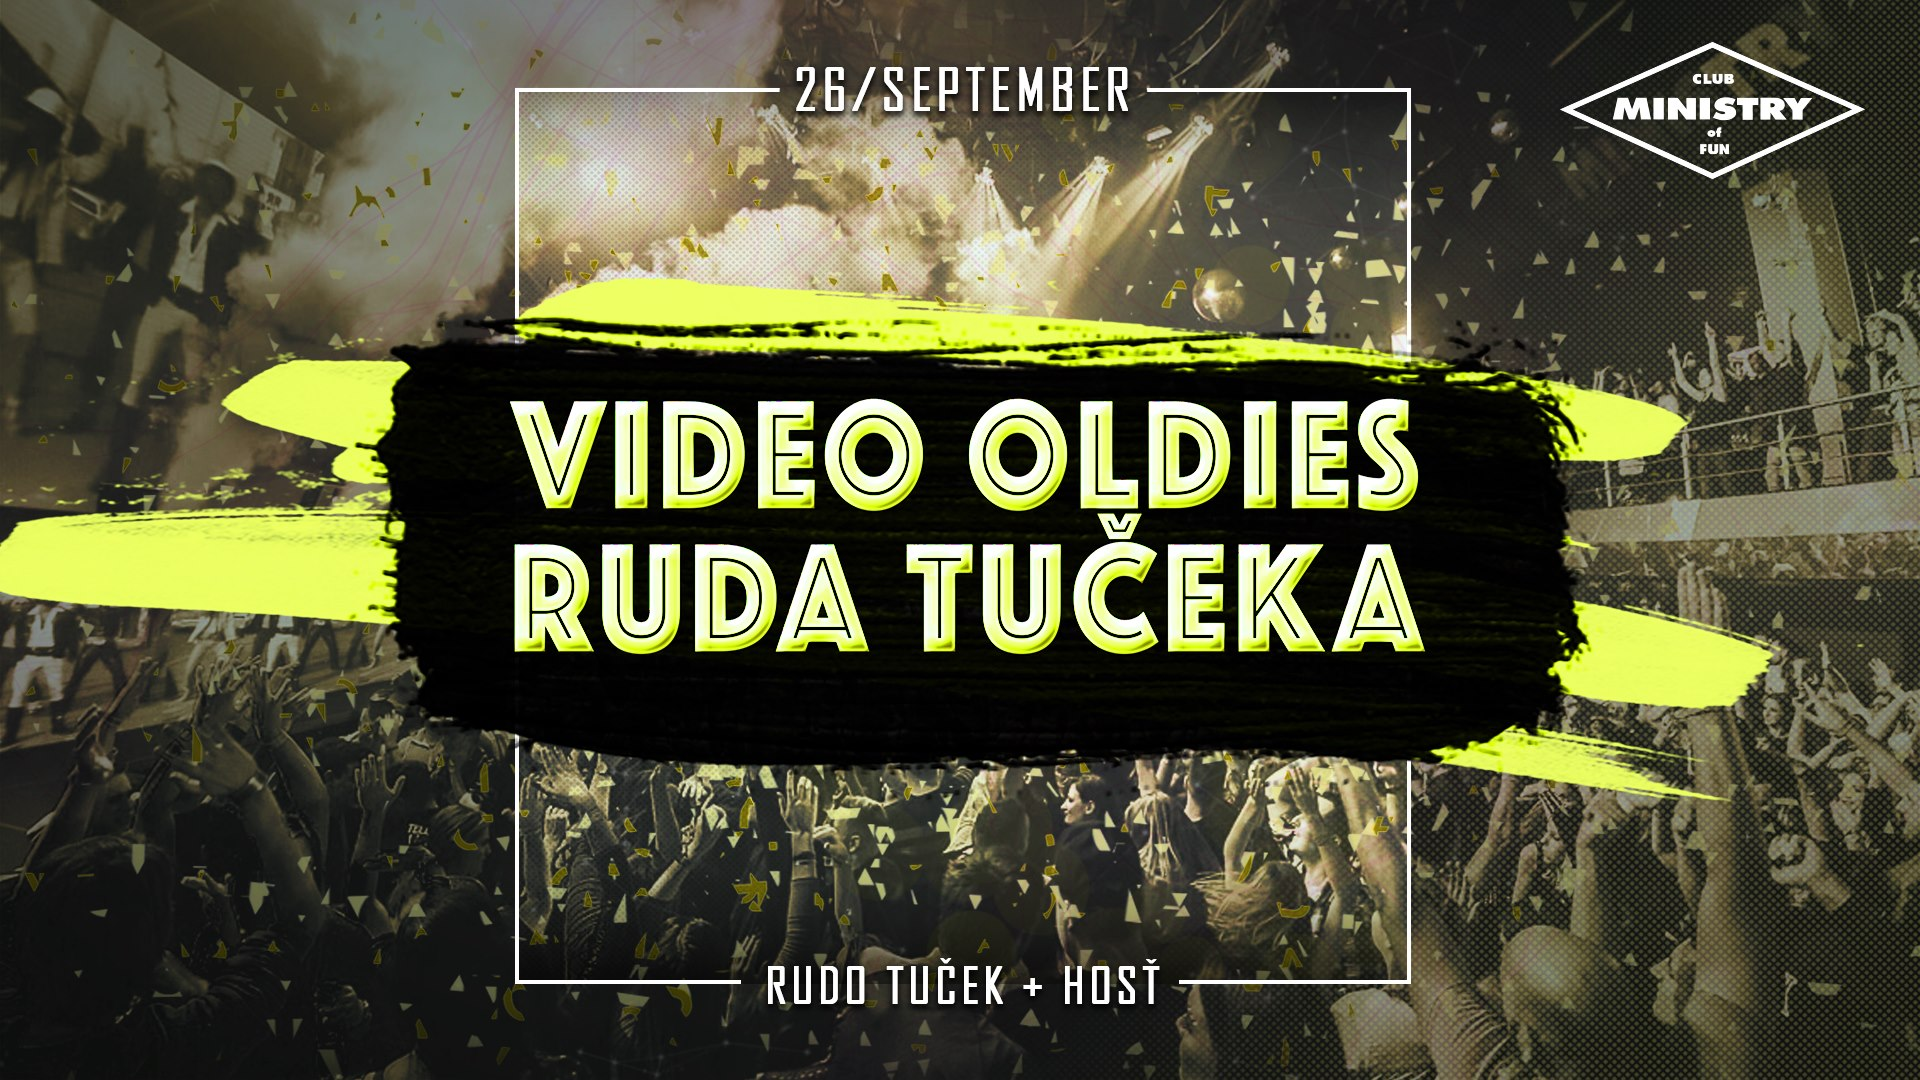 Video Oldies Ruda Tučeka | 26.9.2020 Ministry of Fun